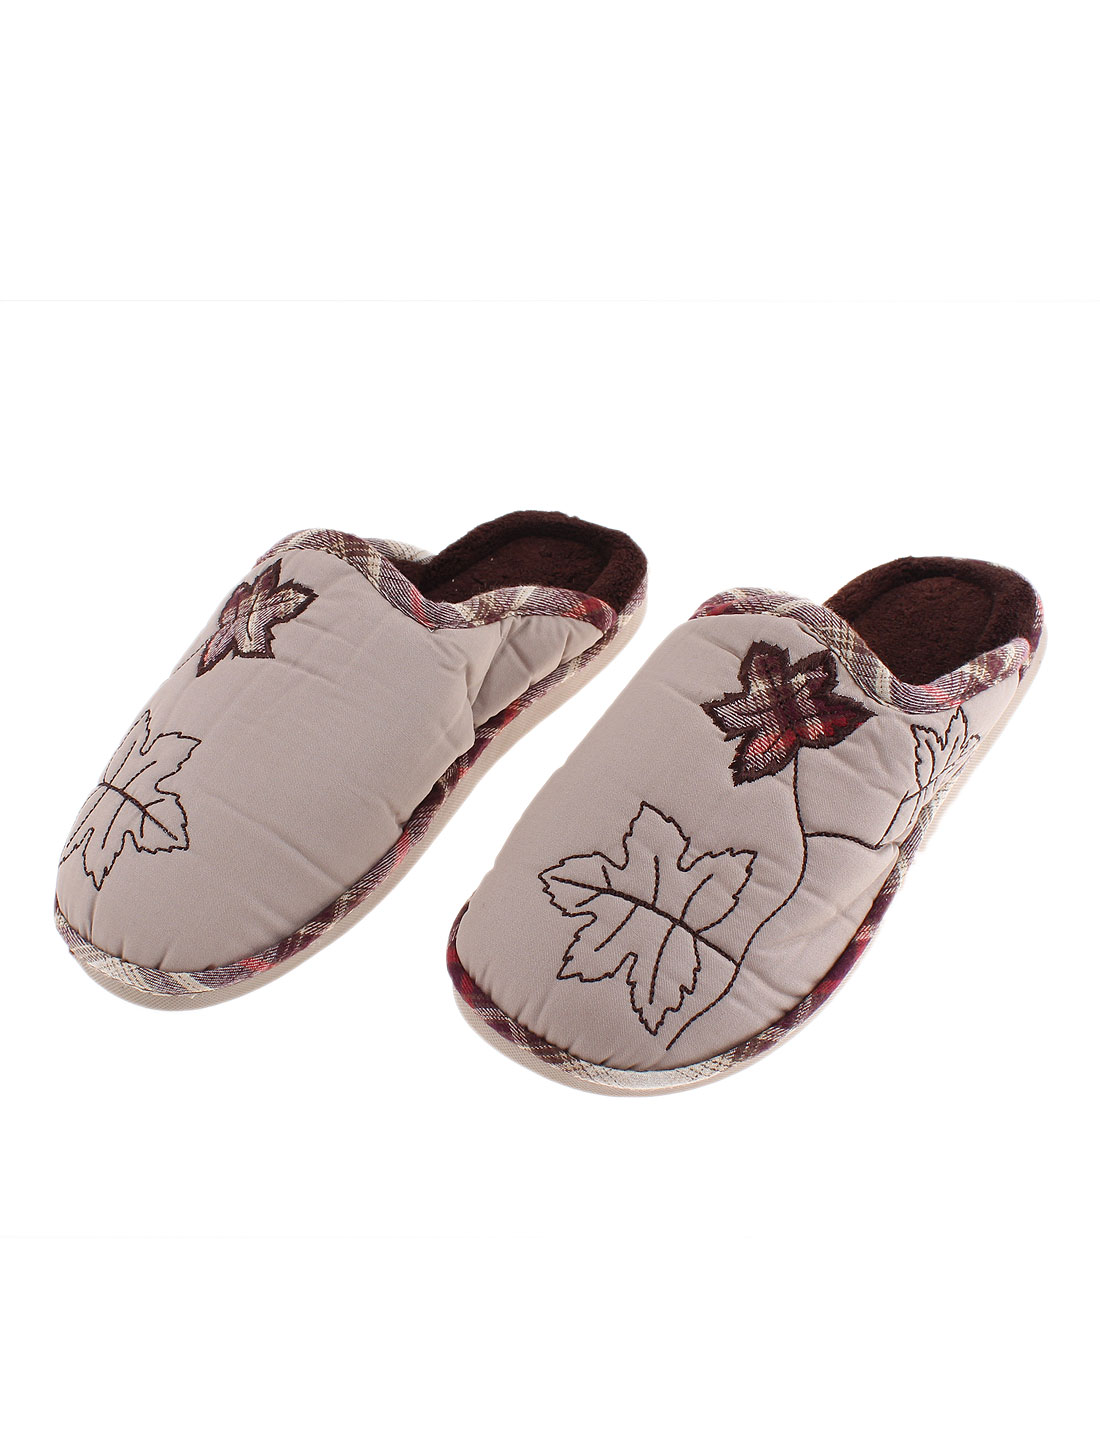 Ladies Maple Leaf Pattern Casual Warmer Cotton Slippers Brown US 8.5